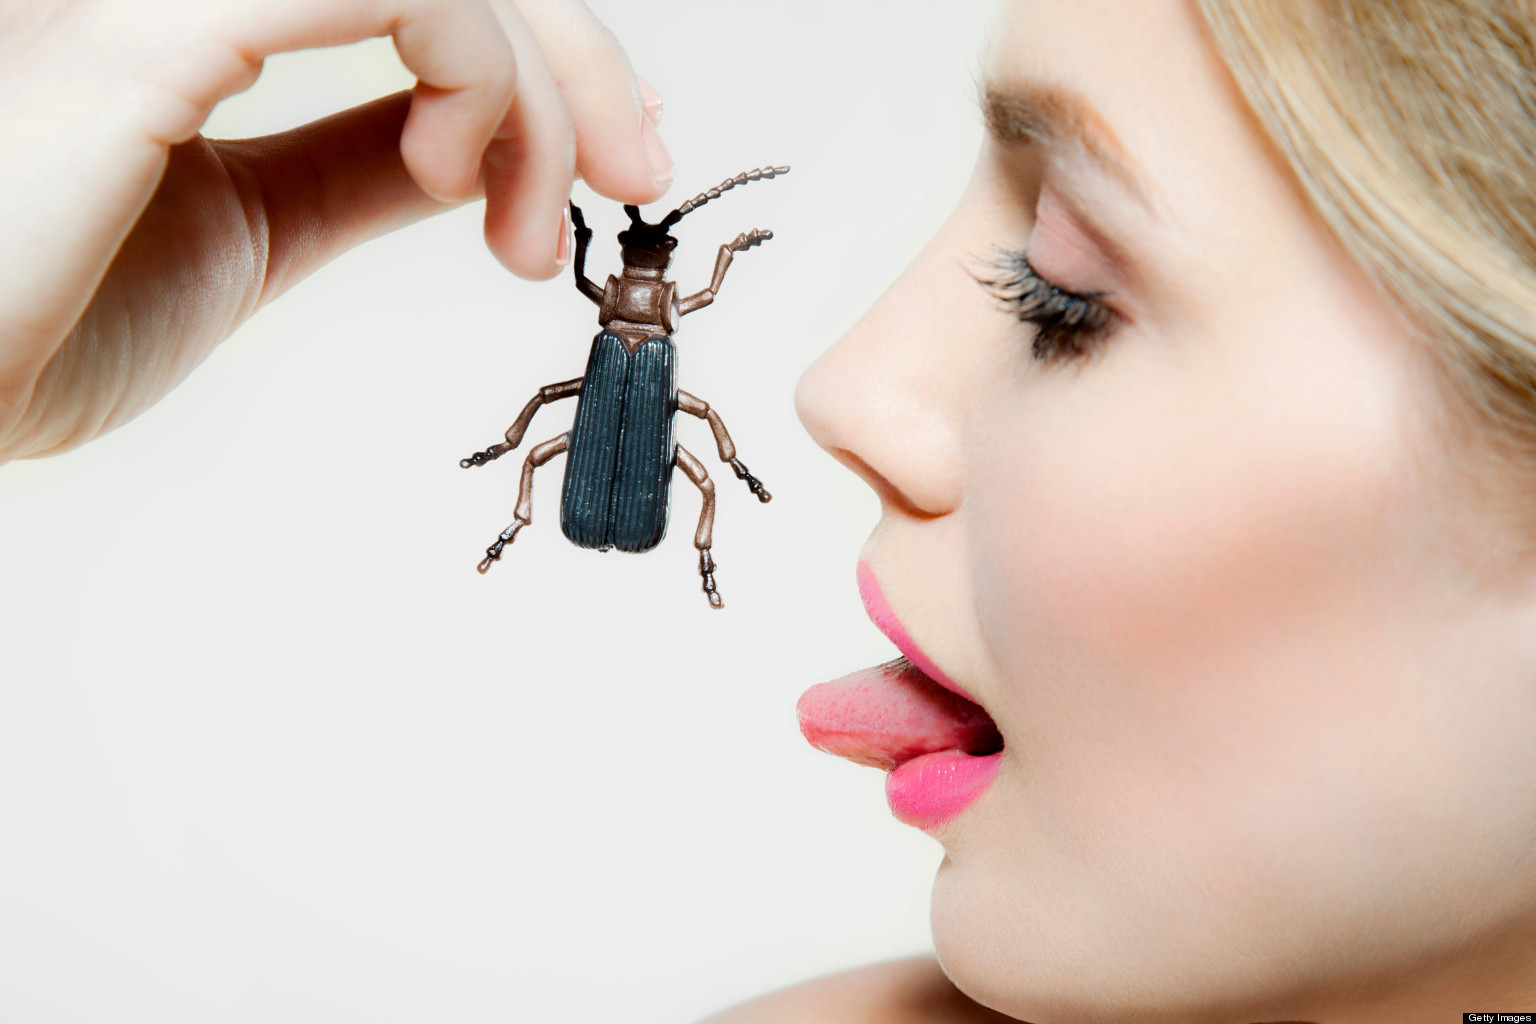 Insects decline: What do insects actually do? -